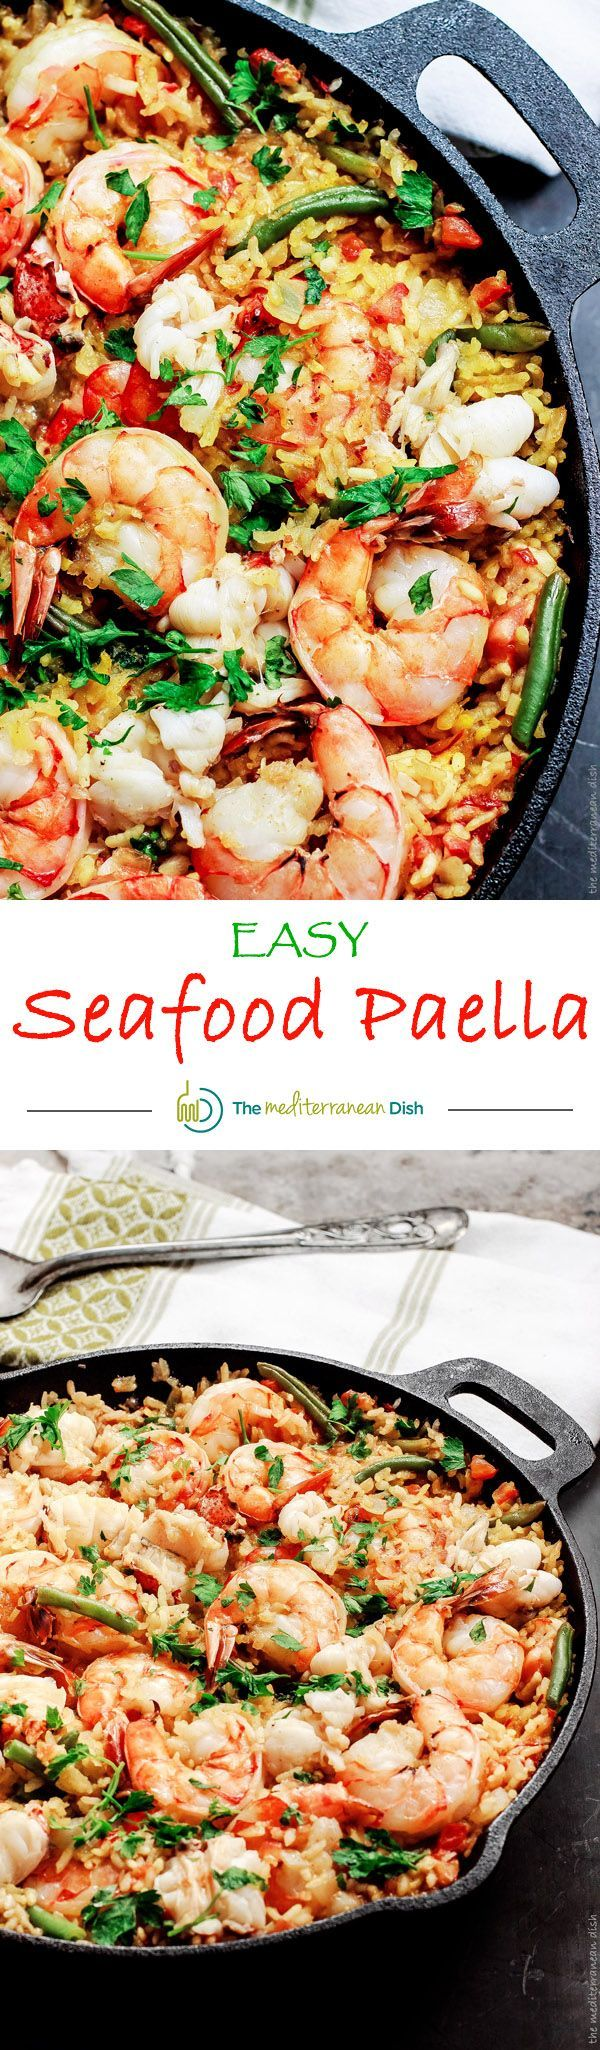 Easy #seafood paella with #shrimp and lobster. Step-by-step photos guide you through this delicious one-pan-wonder!